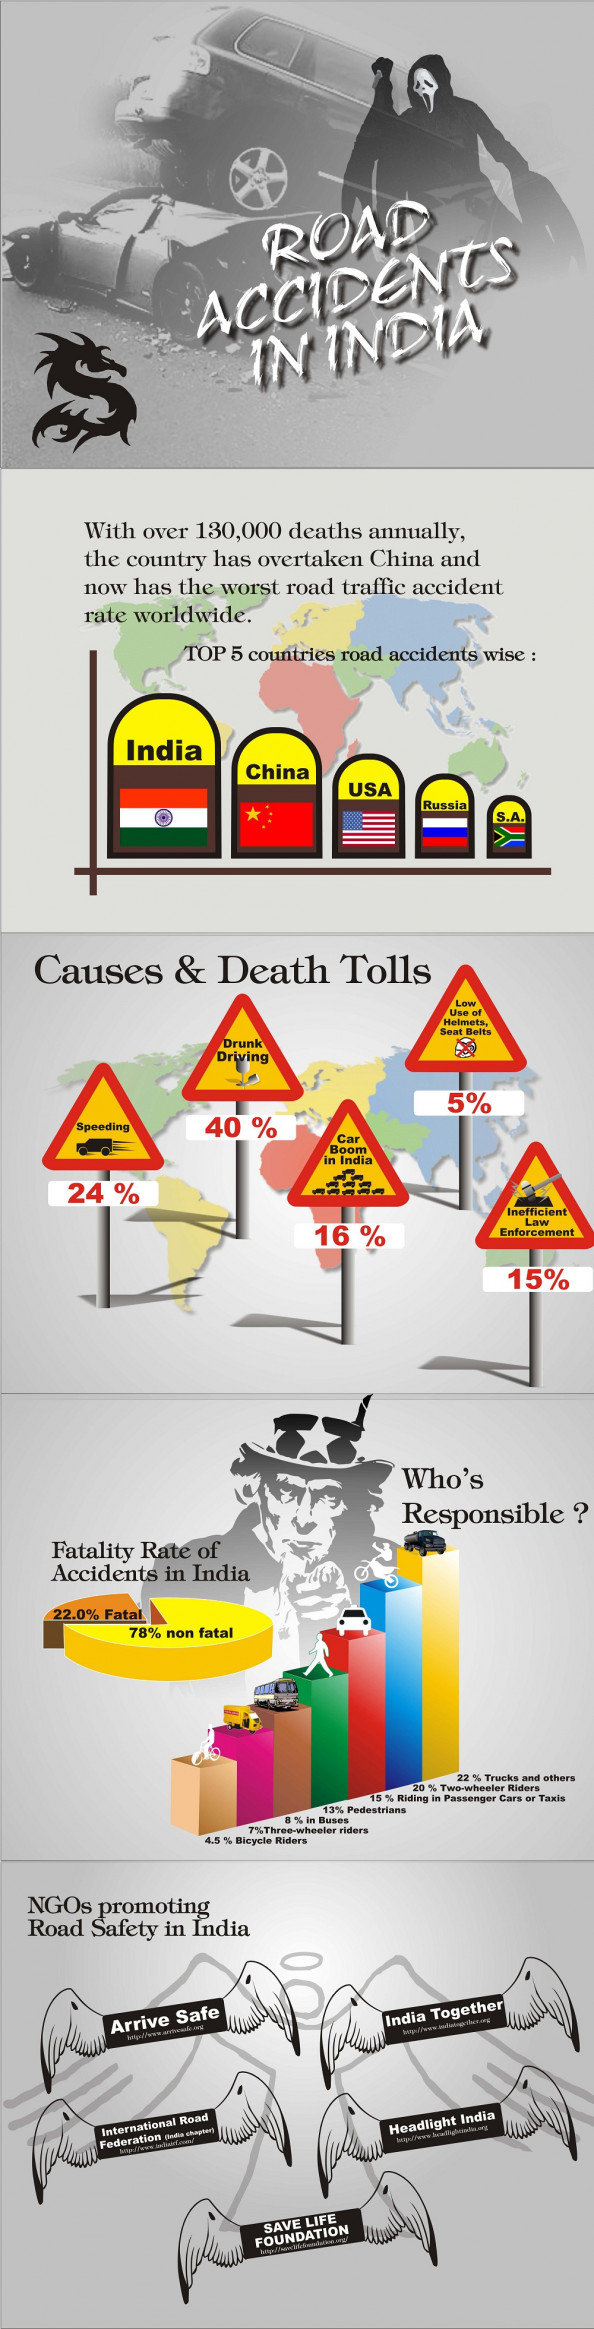 Road Accidents in India Infographic